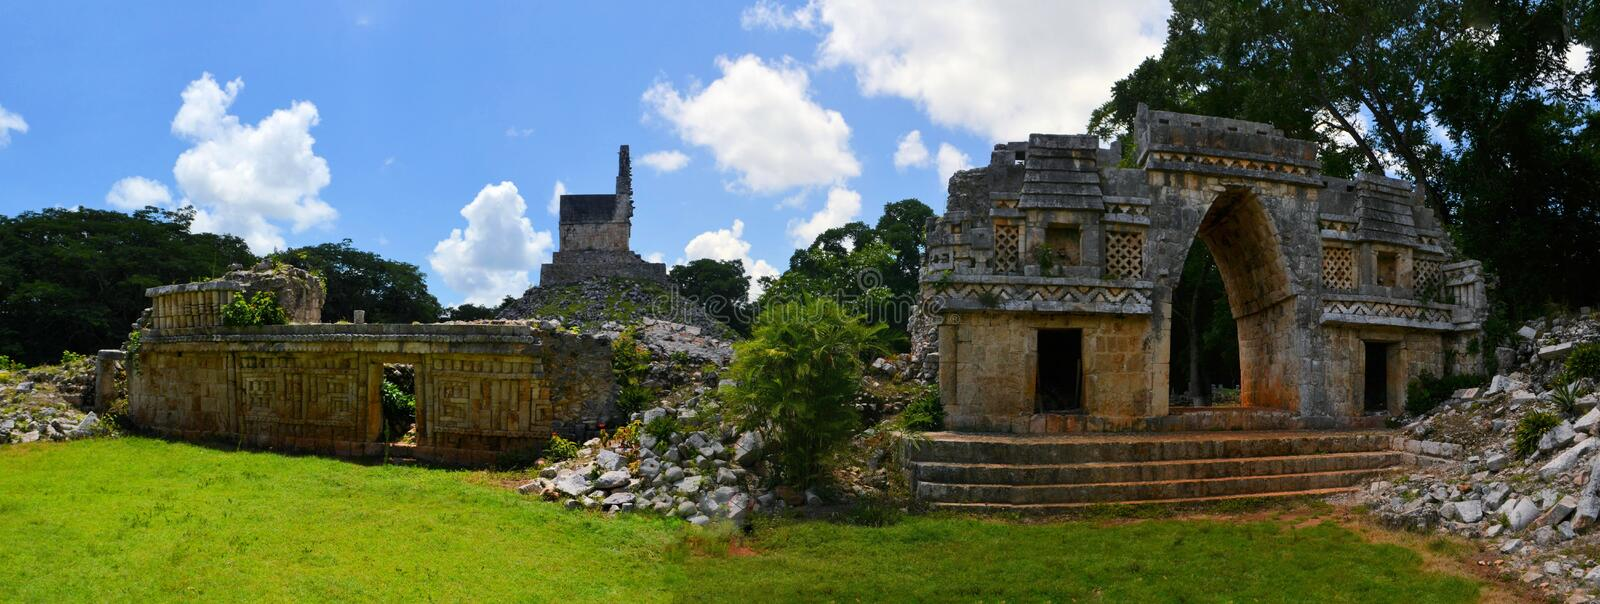 Ruta Puuc: El Sayil | Expat Journal: Postcards from the Edge